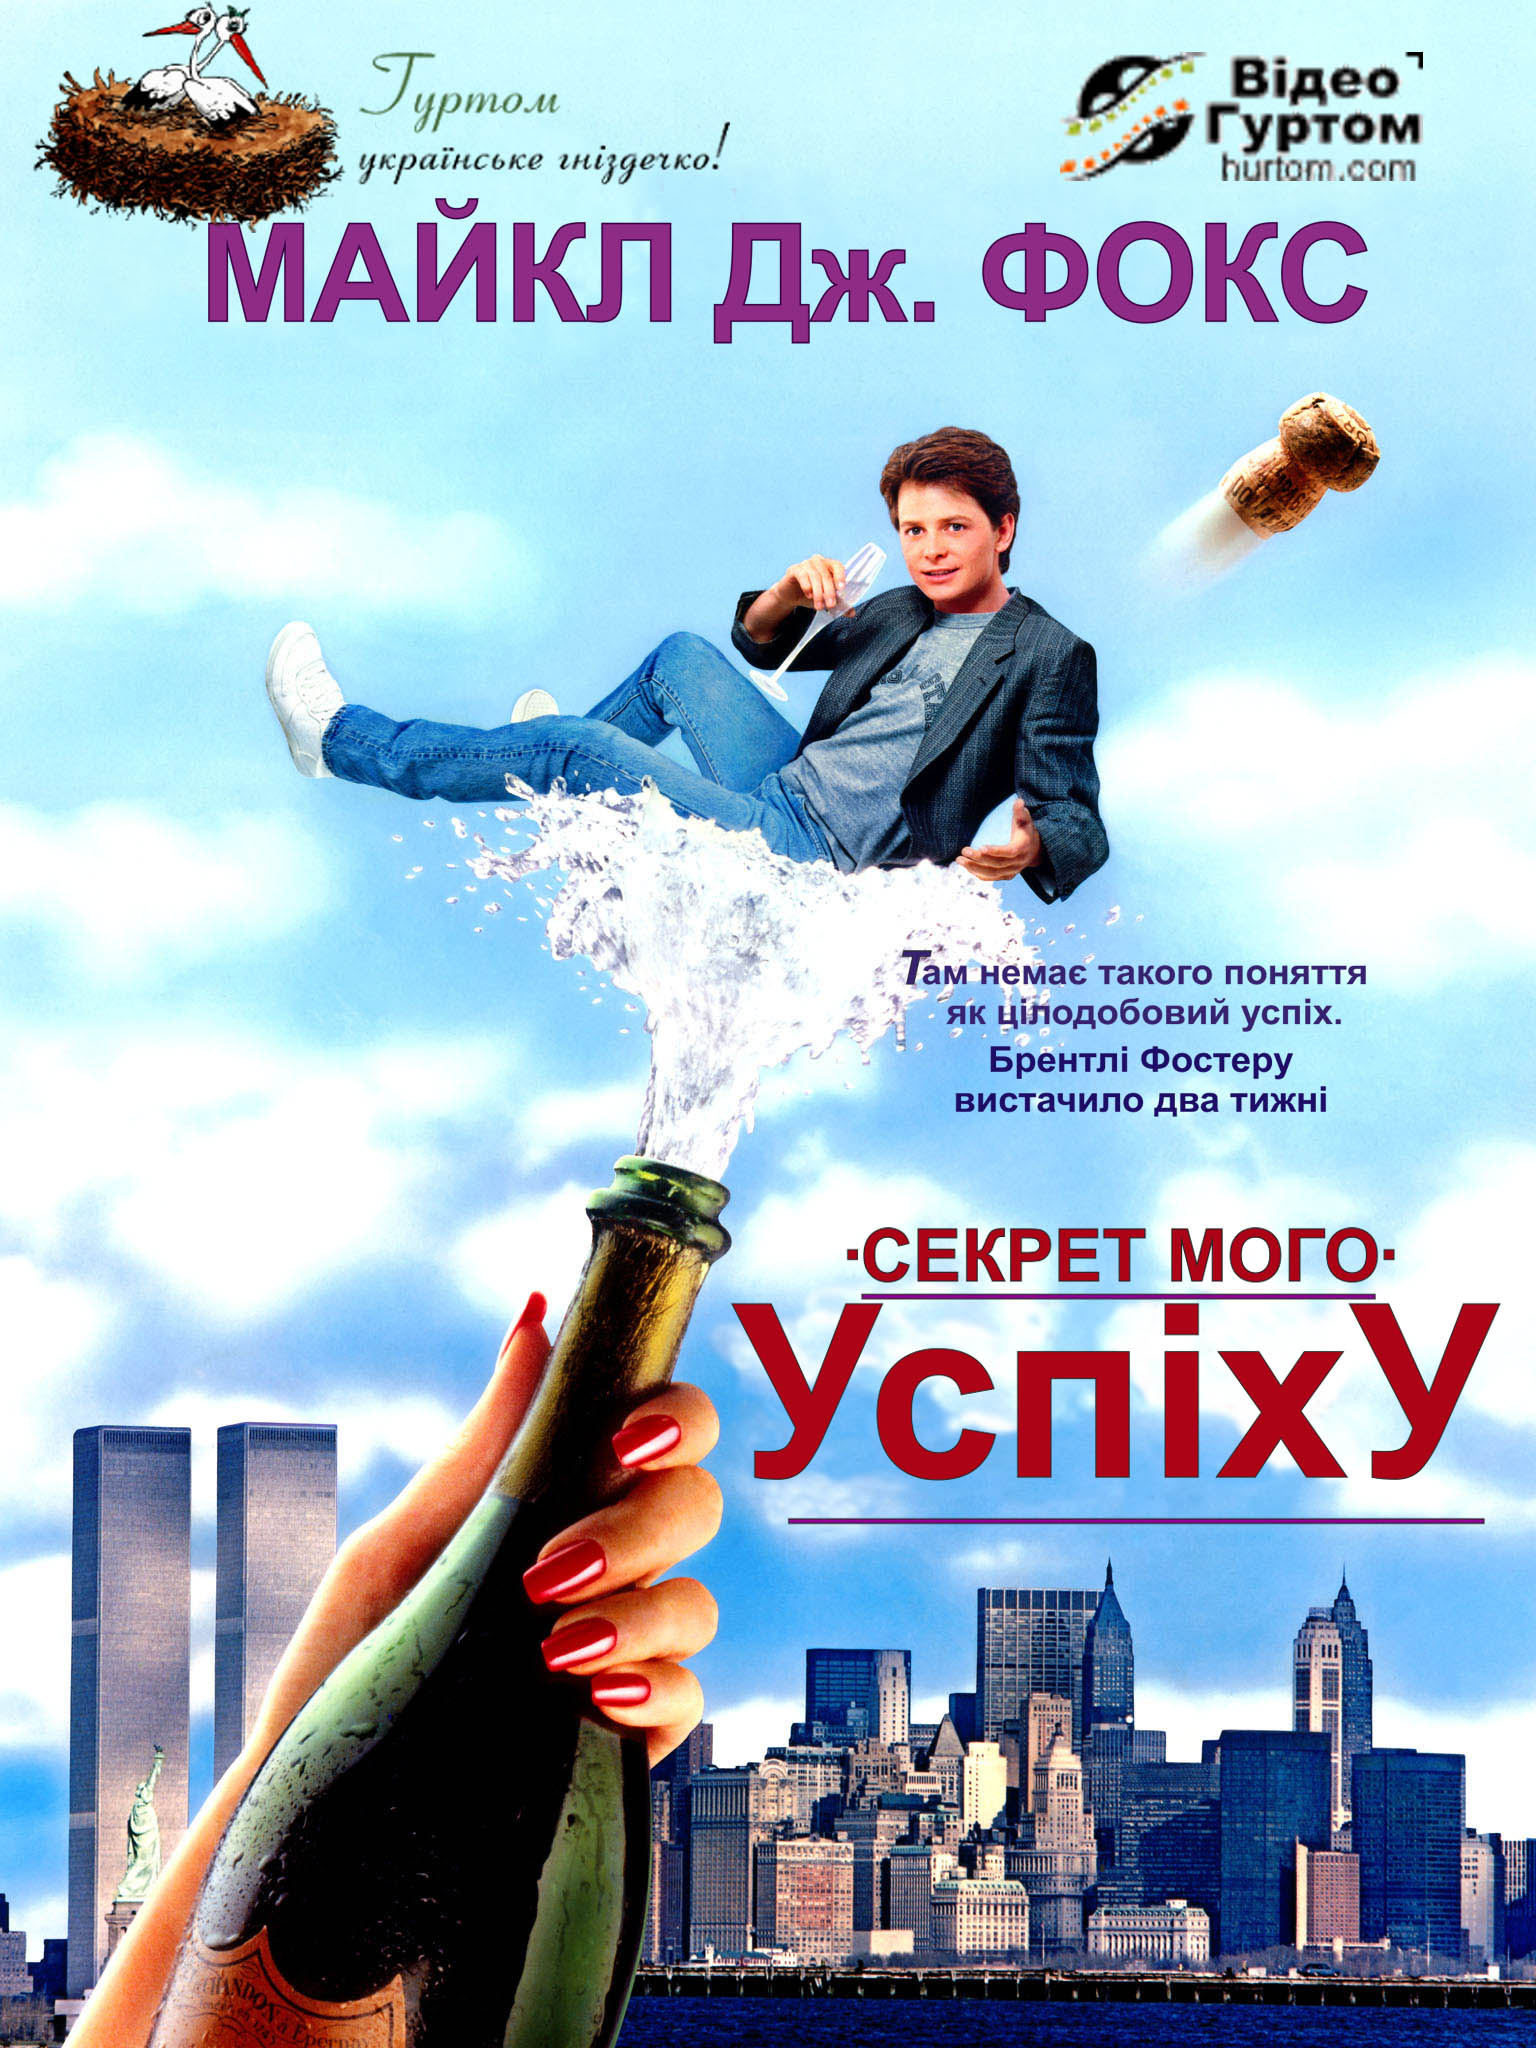 Секрет мого успіху / The Secret of My Success (1987) AVC Ukr/Eng | Sub Eng